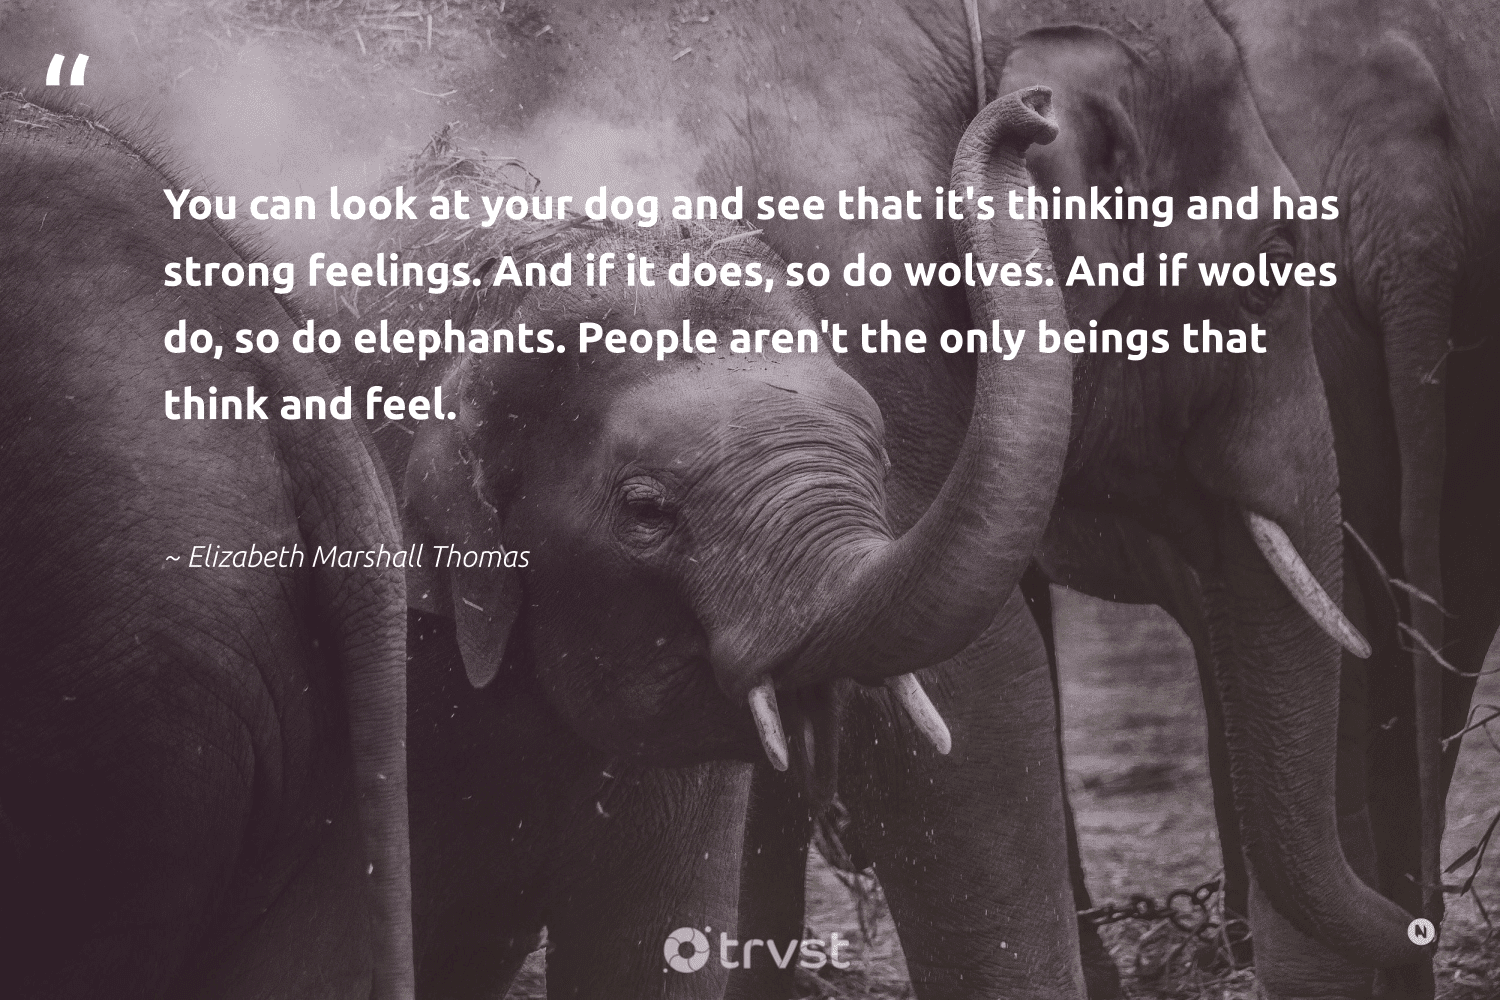 """""""You can look at your dog and see that it's thinking and has strong feelings. And if it does, so do wolves. And if wolves do, so do elephants. People aren't the only beings that think and feel.""""  - Elizabeth Marshall Thomas #trvst #quotes #elephants #endangered #socialchange #savetheelephants #bethechange #wildanimals #dotherightthing #explore #collectiveaction #animals"""